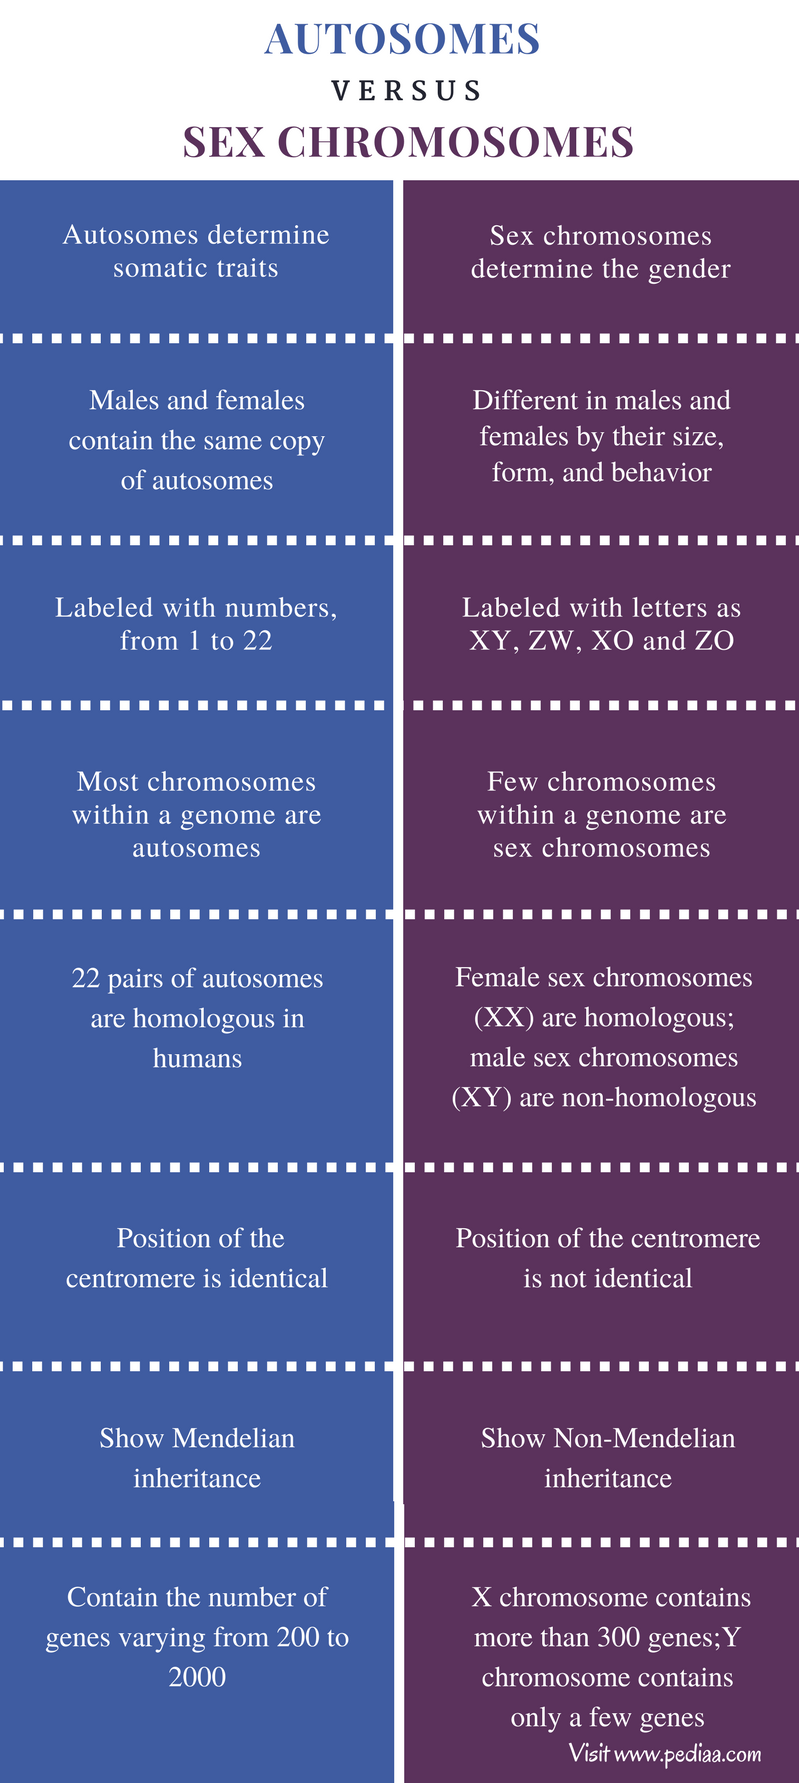 similarities between sex chromosomes and autosomes example in Manchester